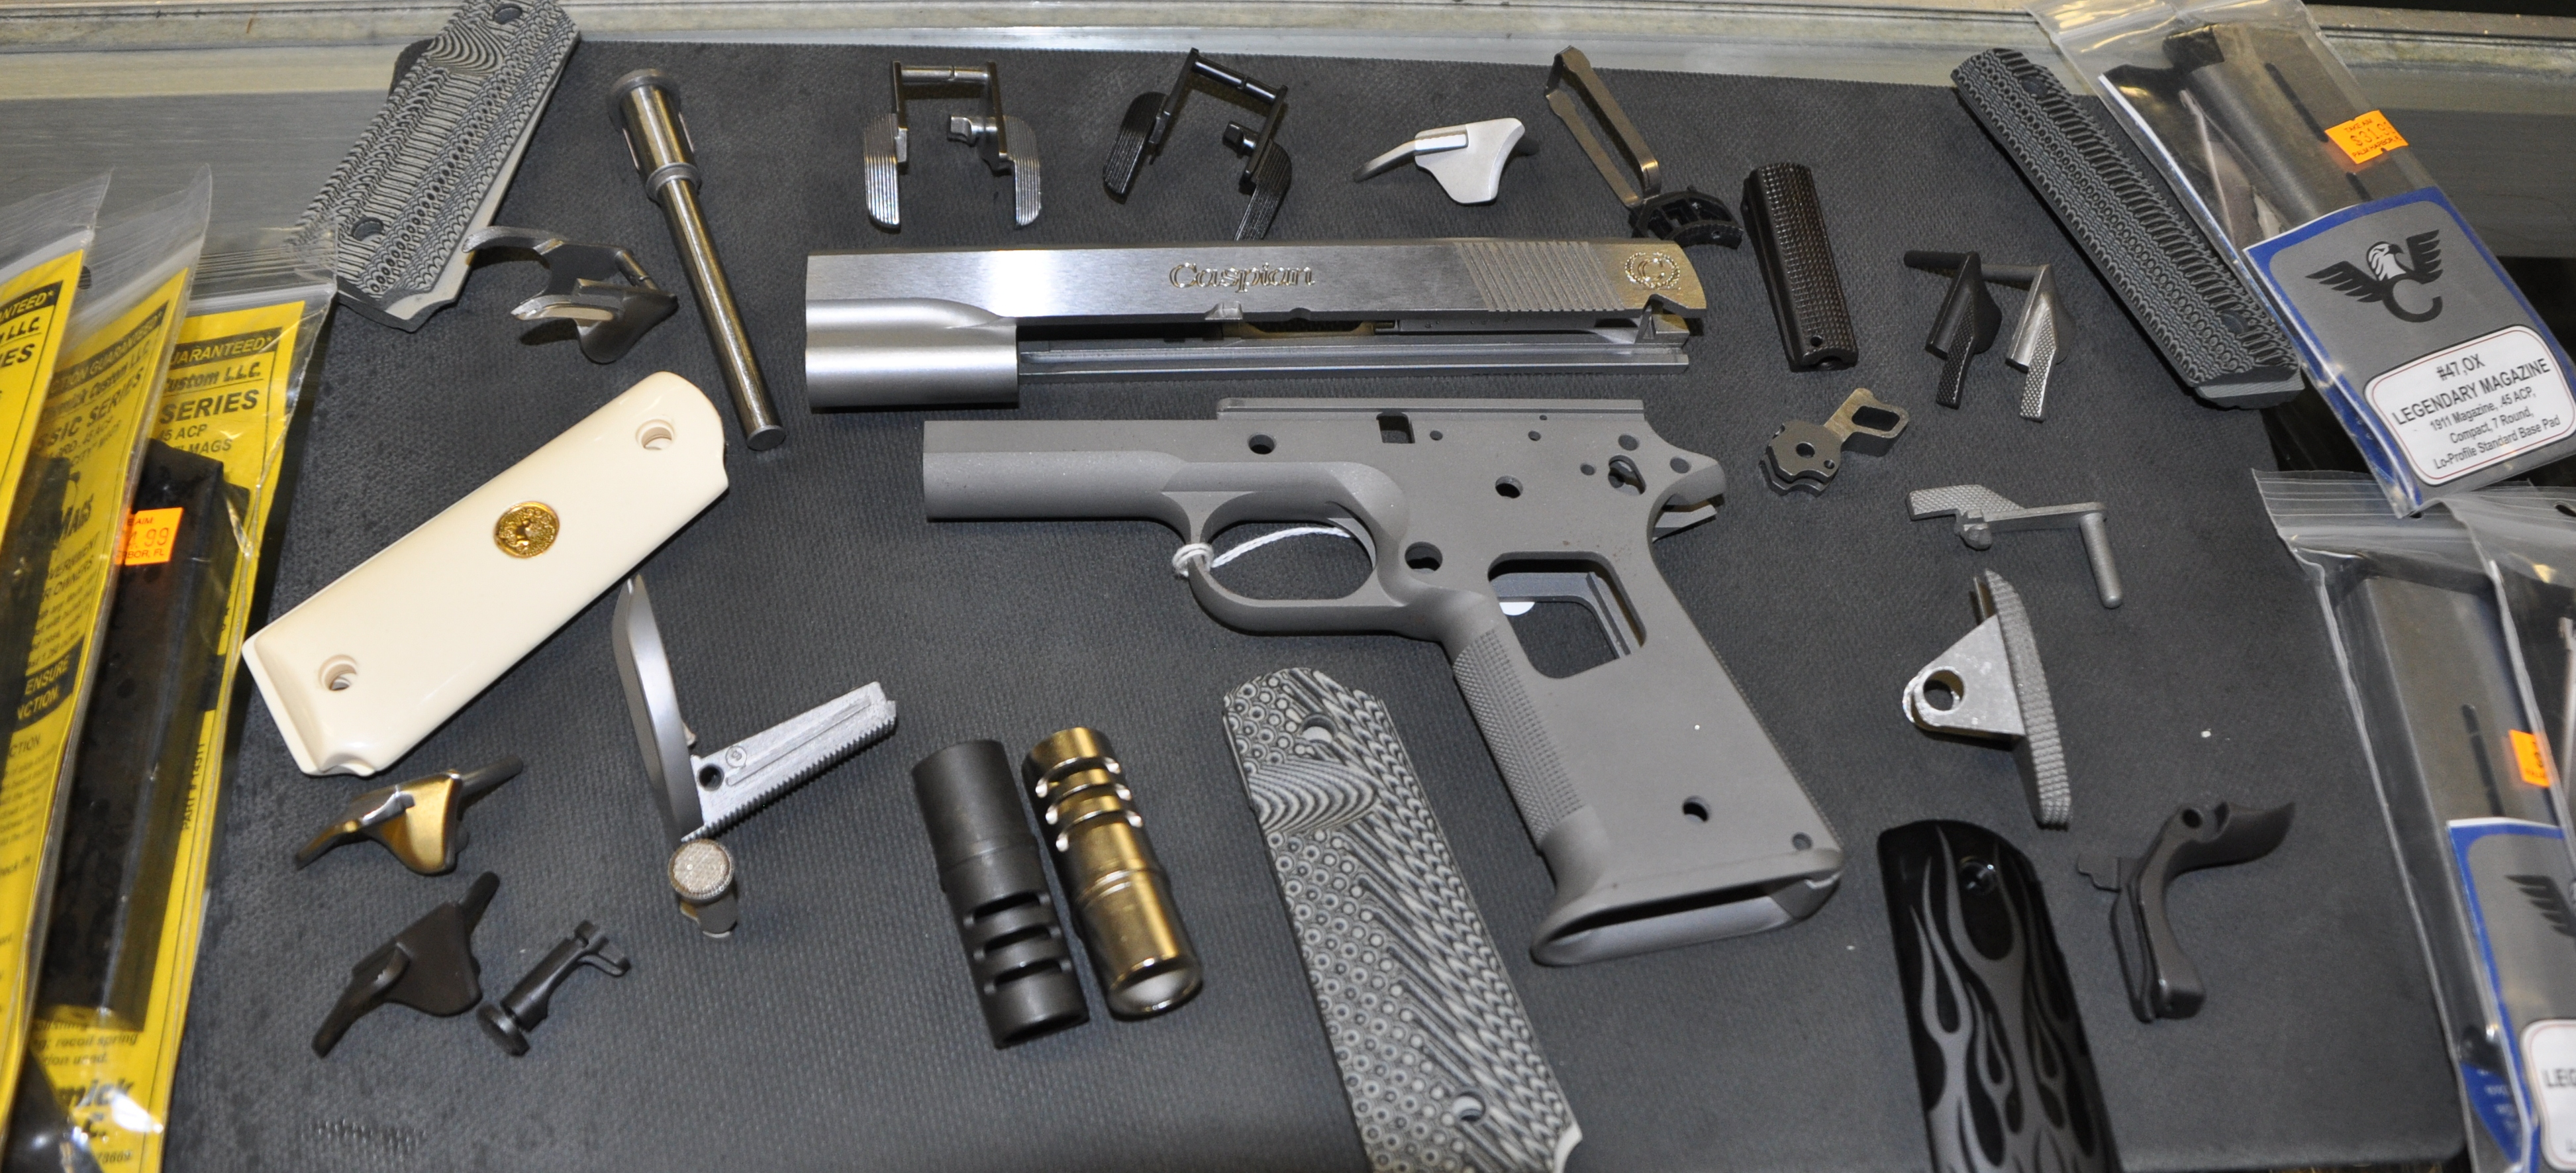 List Of Synonyms And Antonyms The Word Taurus 1911 Parts 25 Acp Schematic Post About Your Pt1911 Enhancements Here